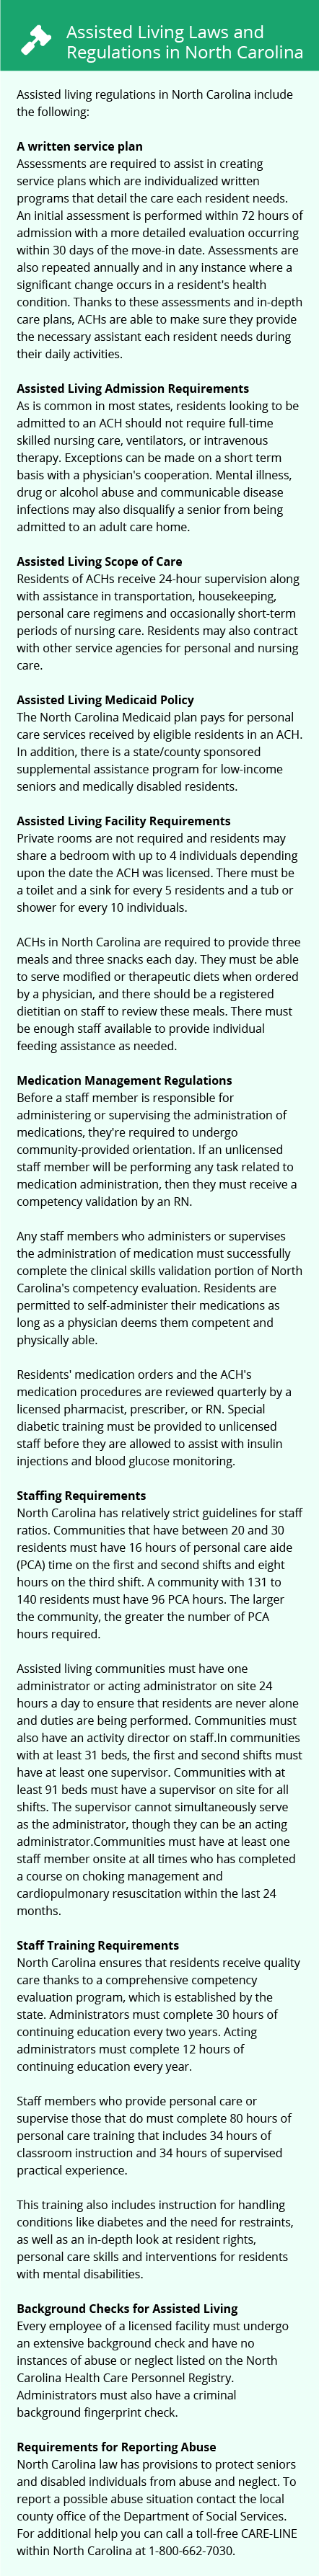 Laws and Regulations in North Carolina